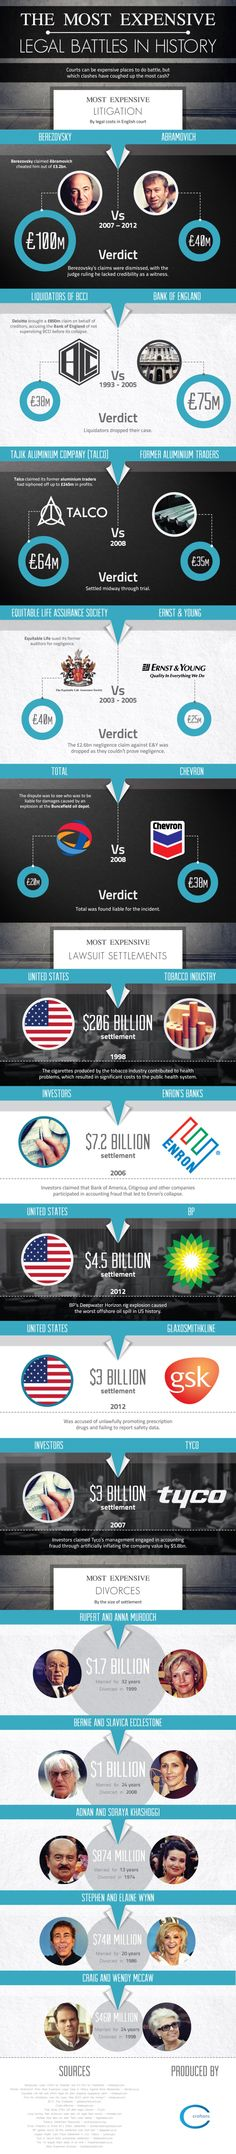 The most expensive legal battles in history #infografia #infographic